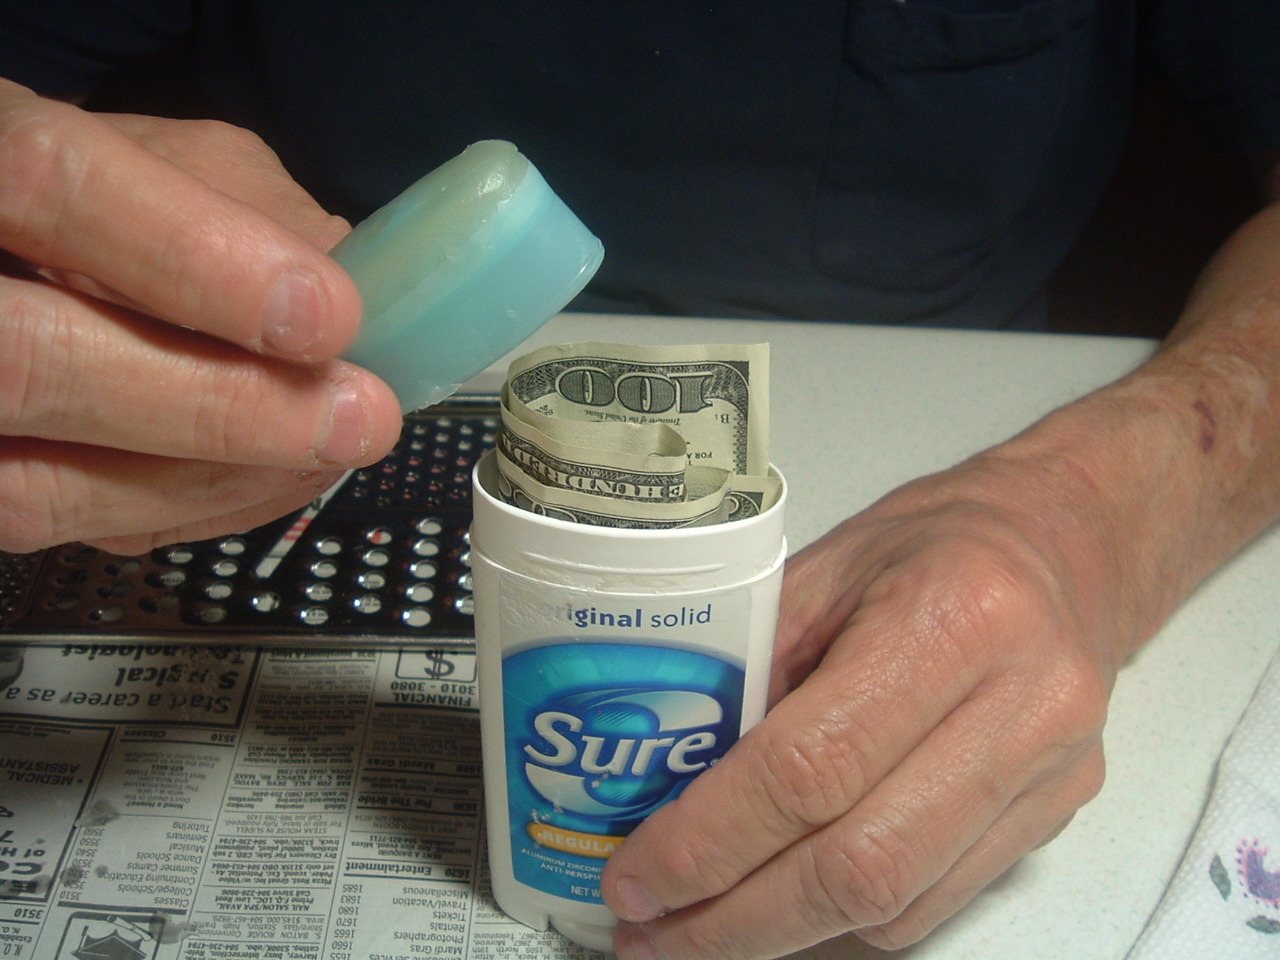 Hide things in your old Deoderant container!